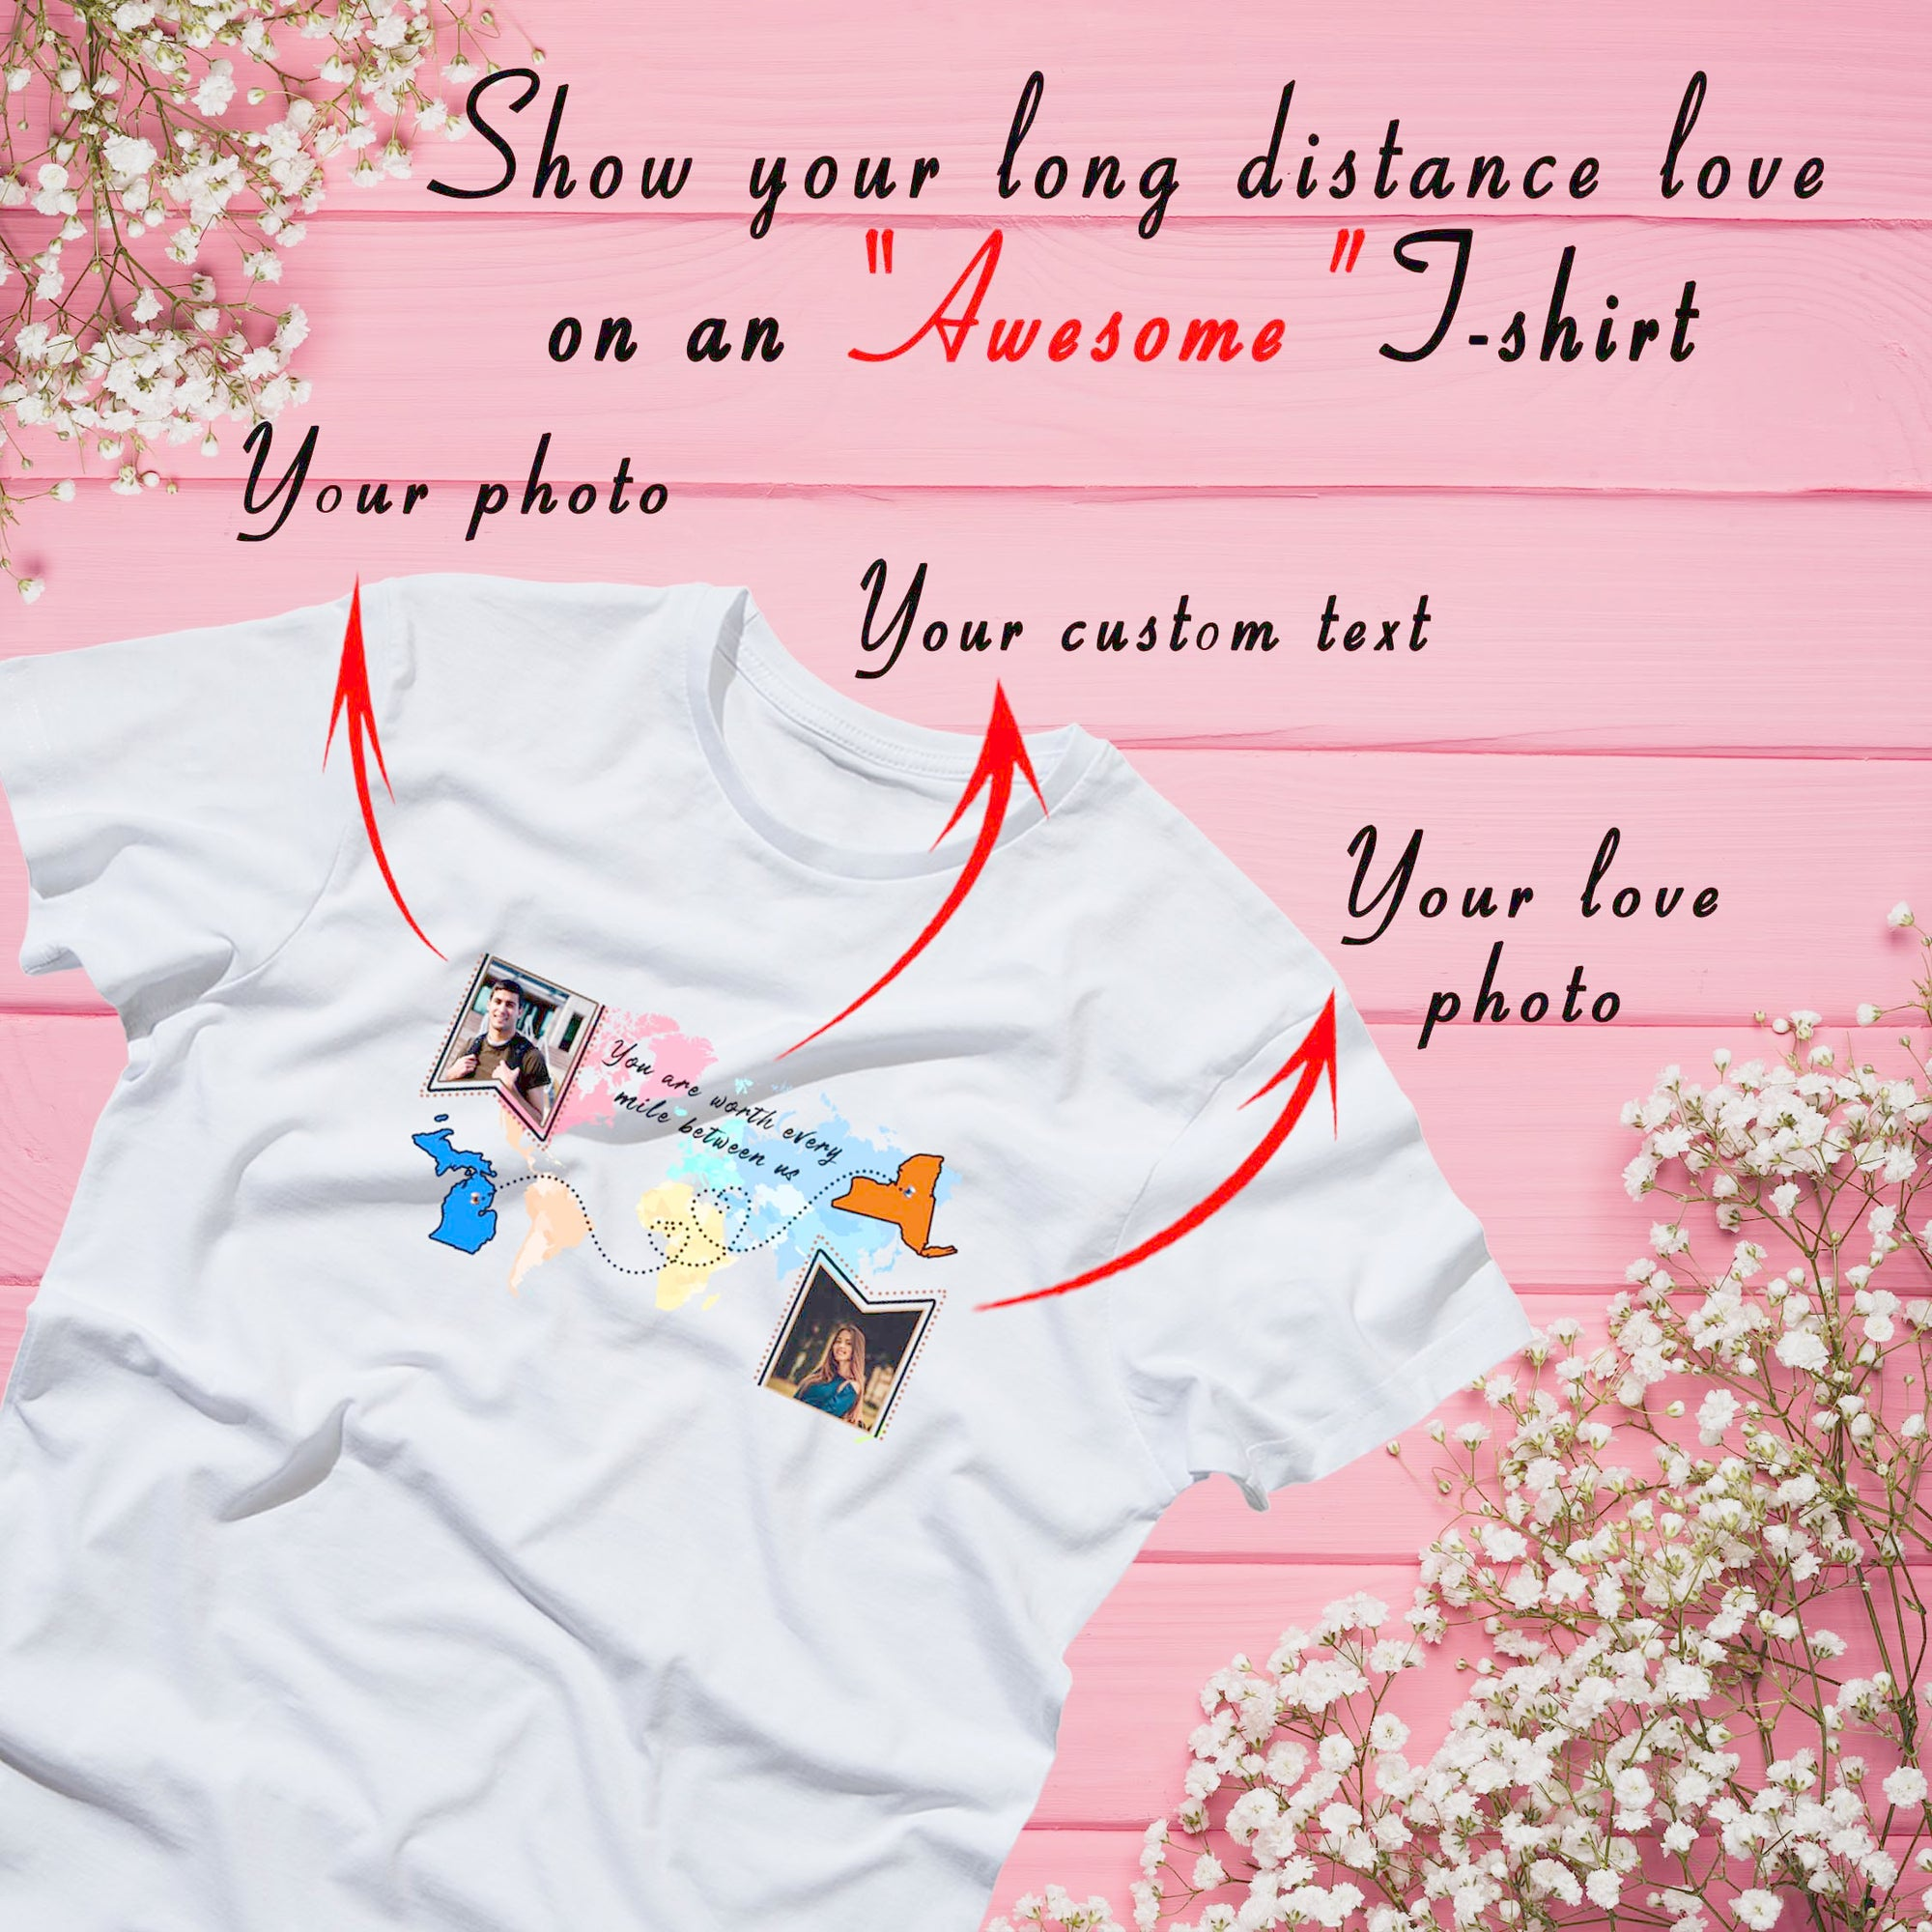 PERSONALIZED UNISEX T- SHIRT - UPLOAD YOUR AND YOUR LOVER PHOTOS ON YOUR T- SHIRT